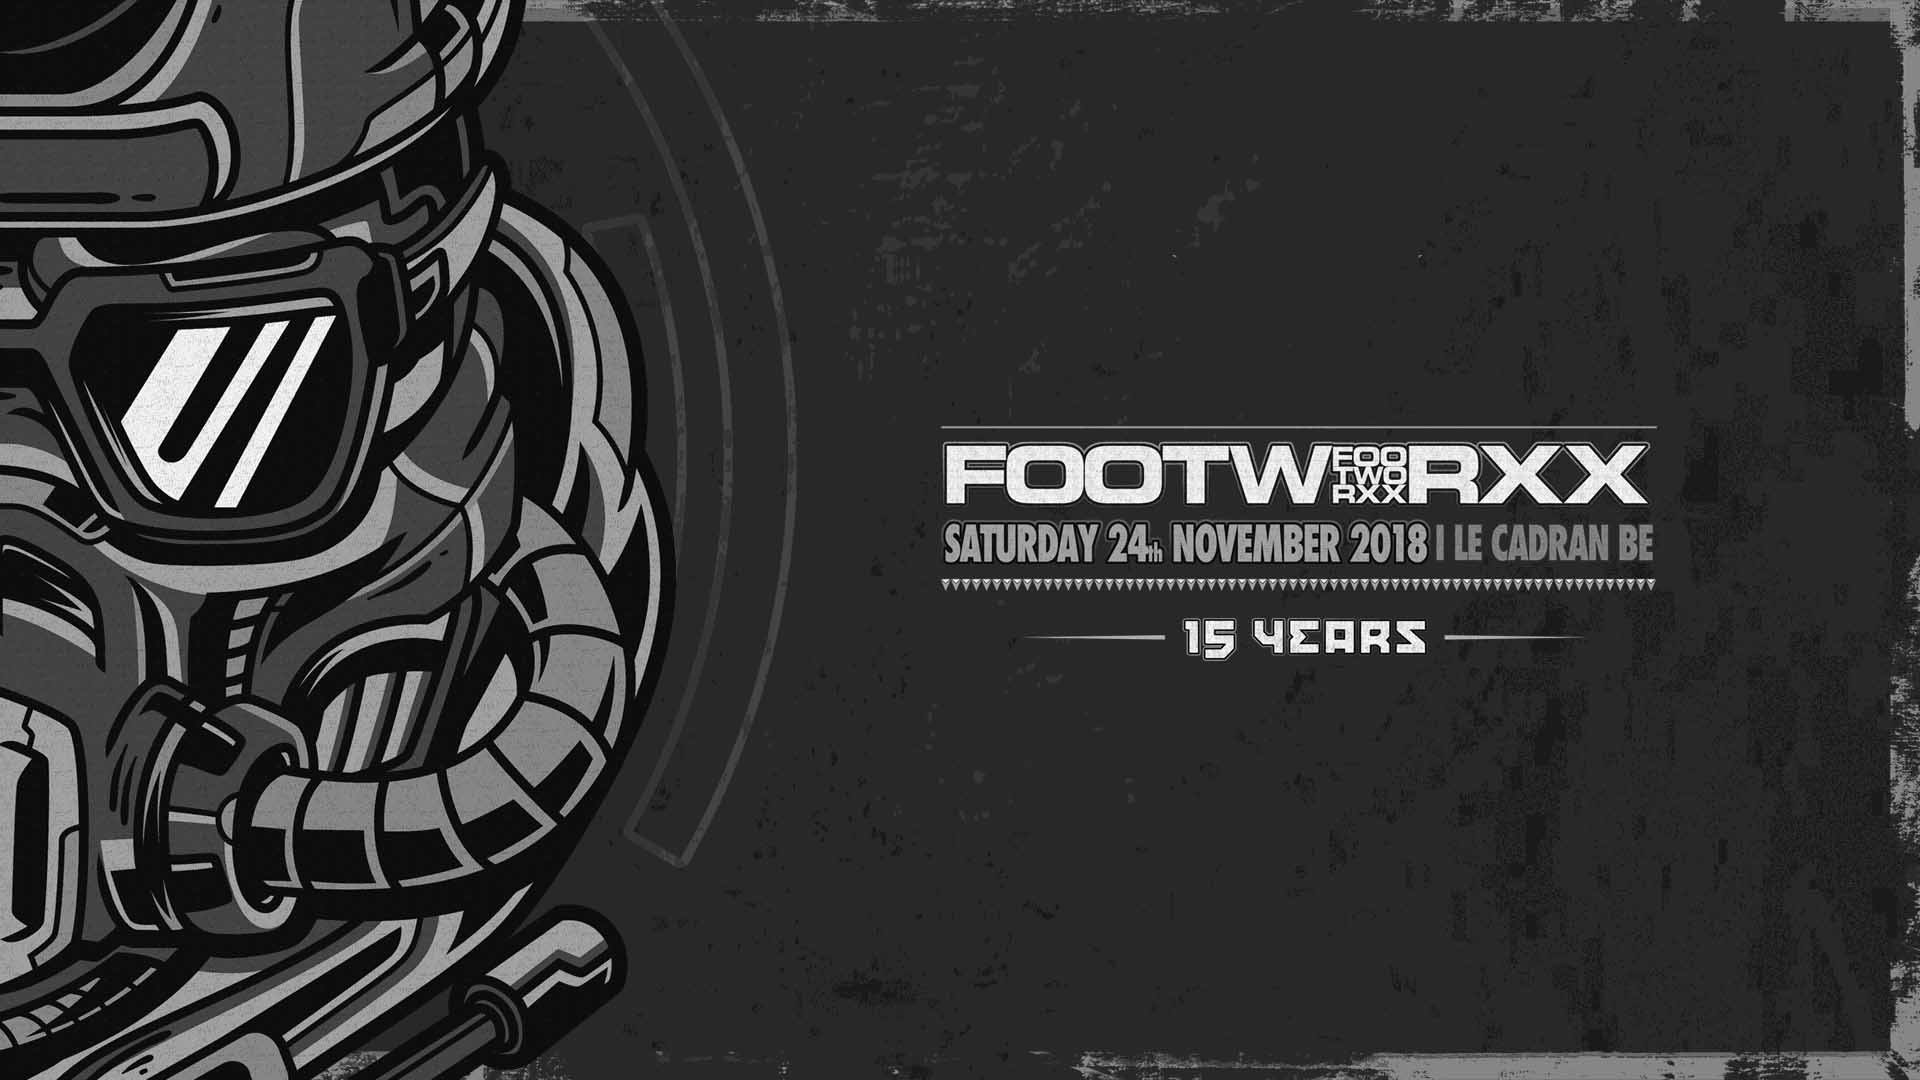 Footworxx 2018